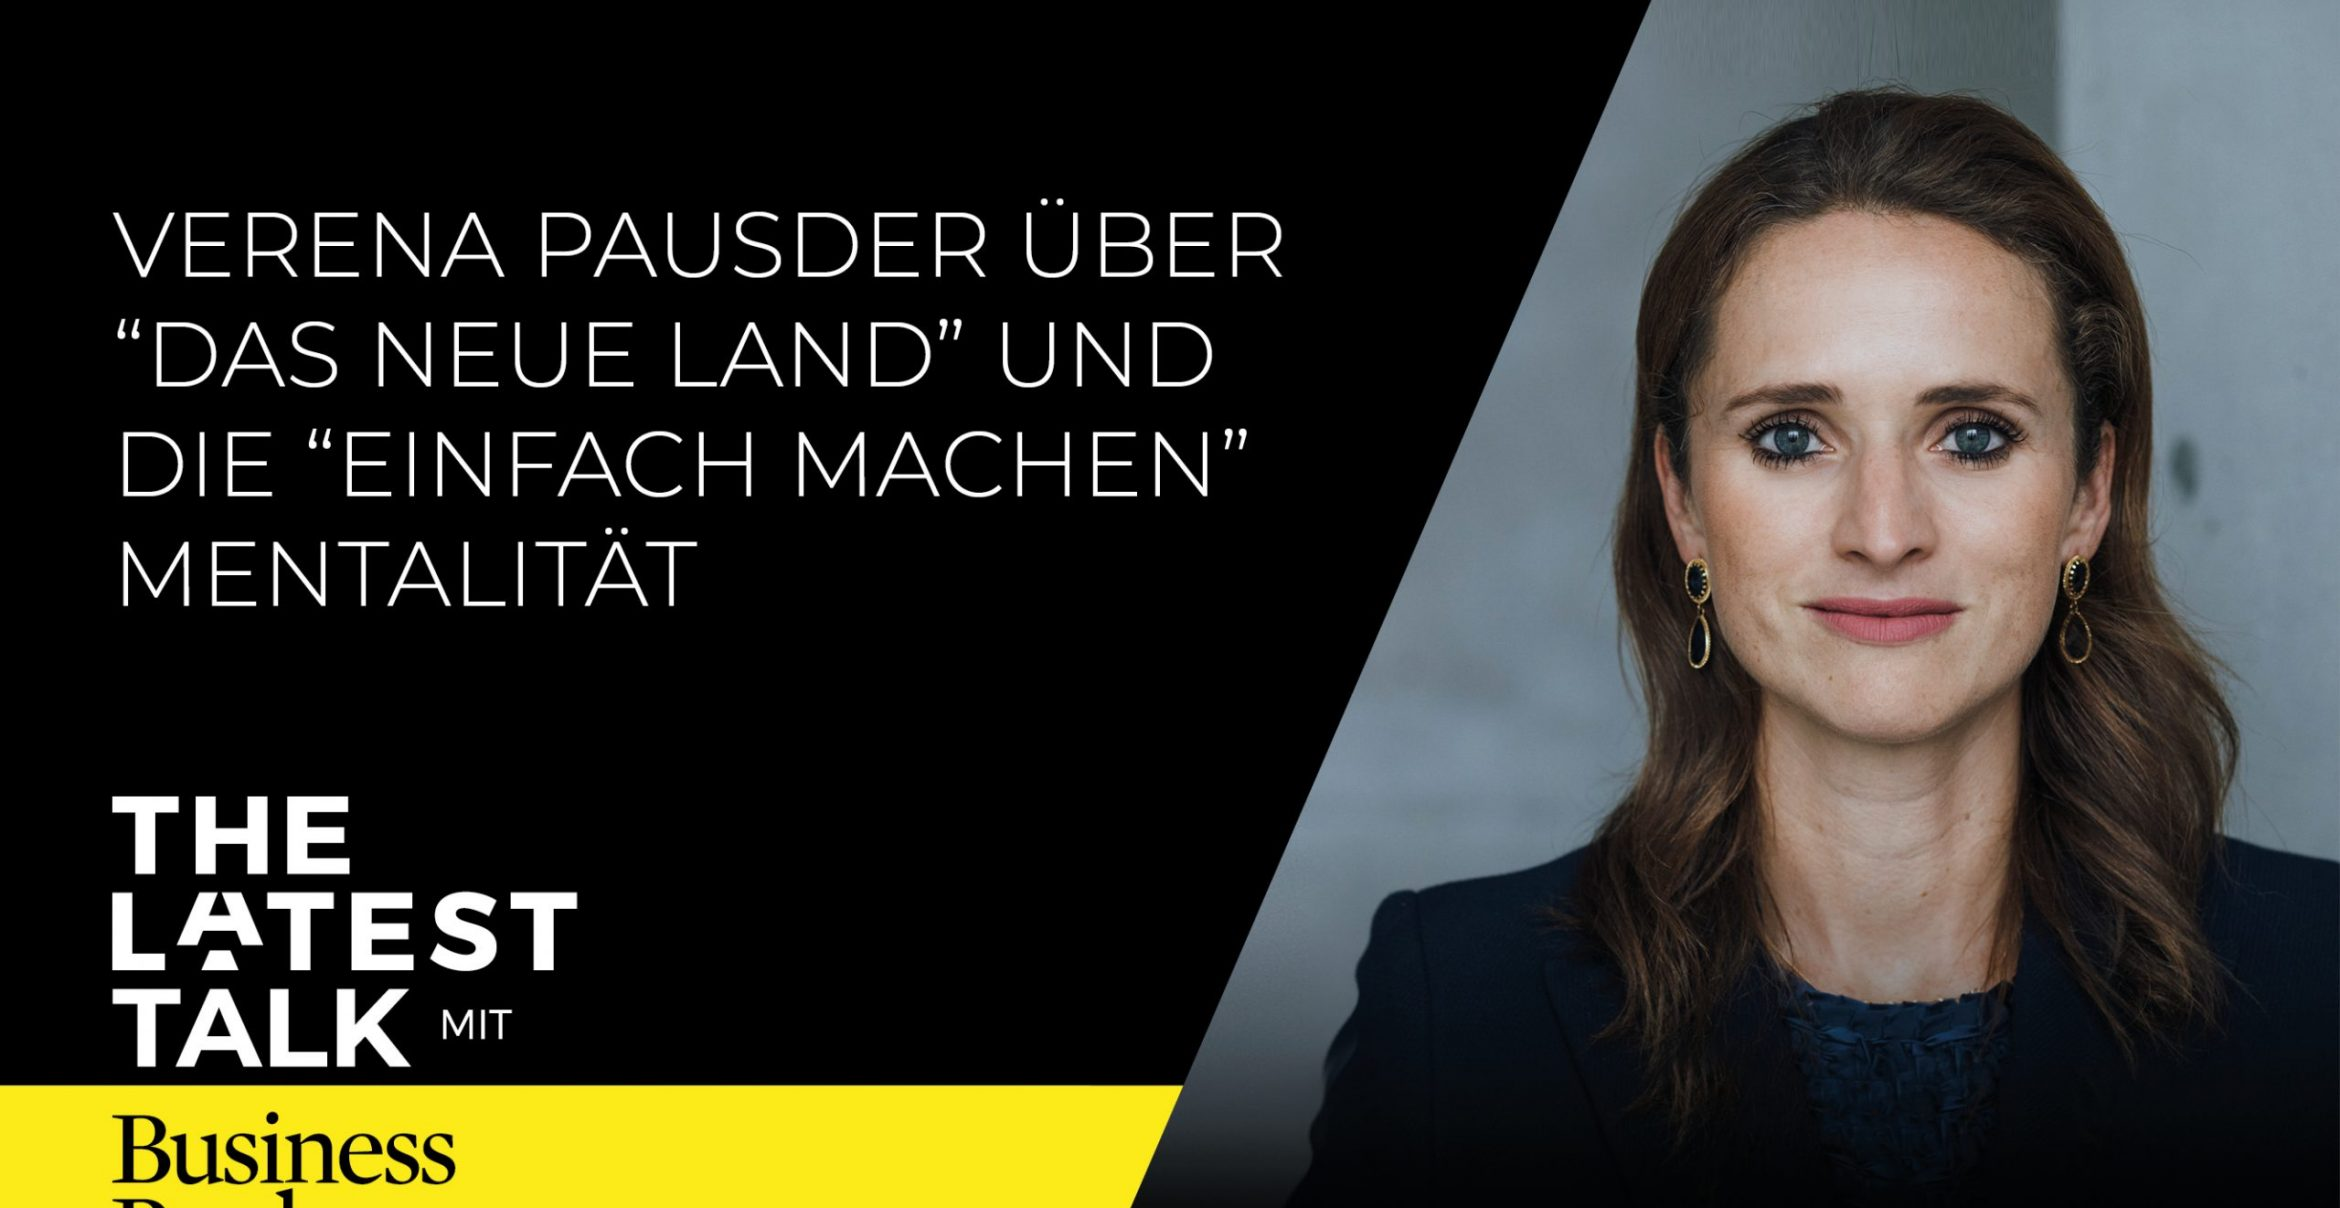 The Latest Talk mit Verena Pausder